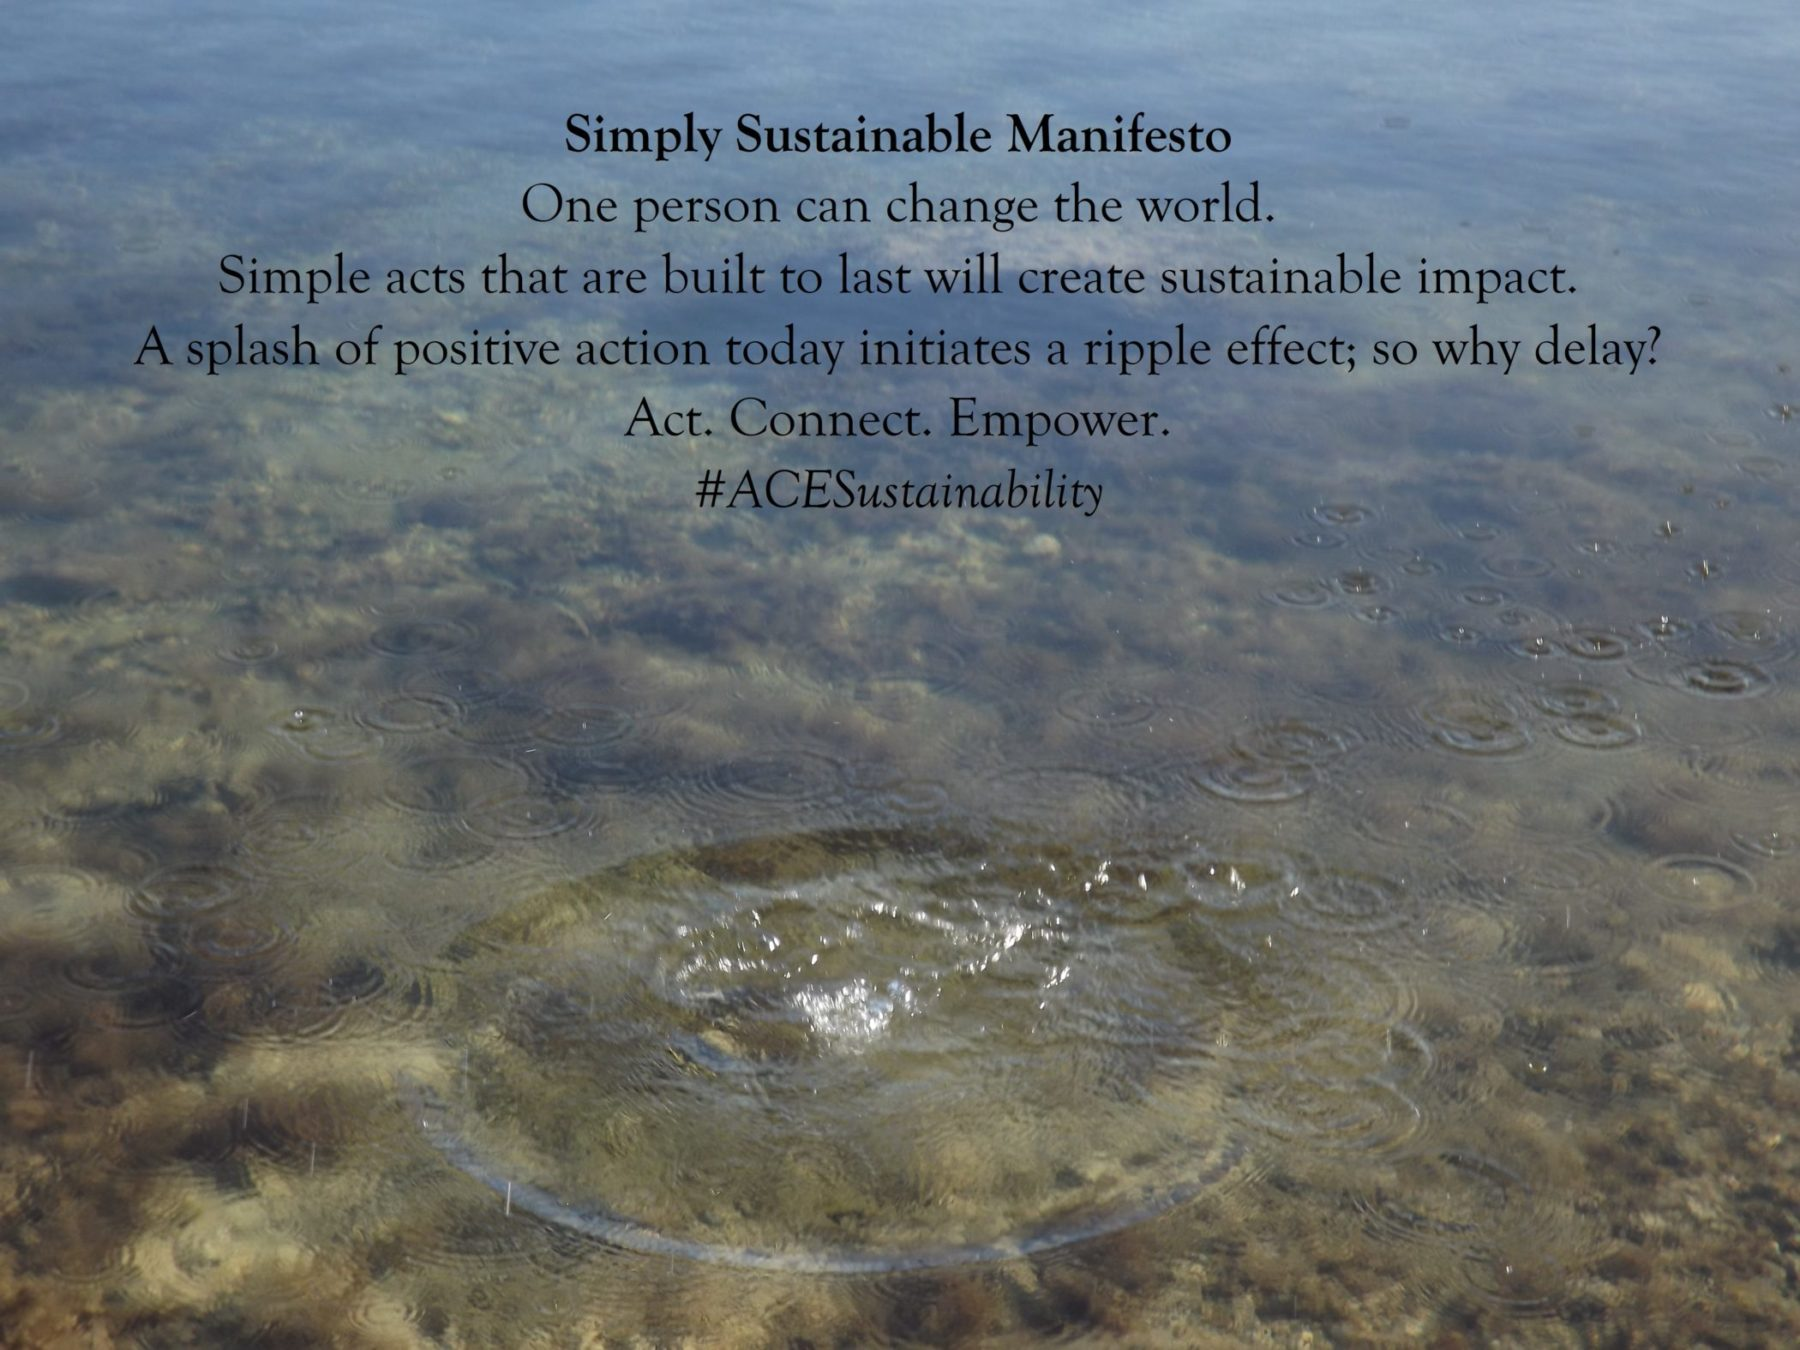 Simply Sustainable Manifesto_Image